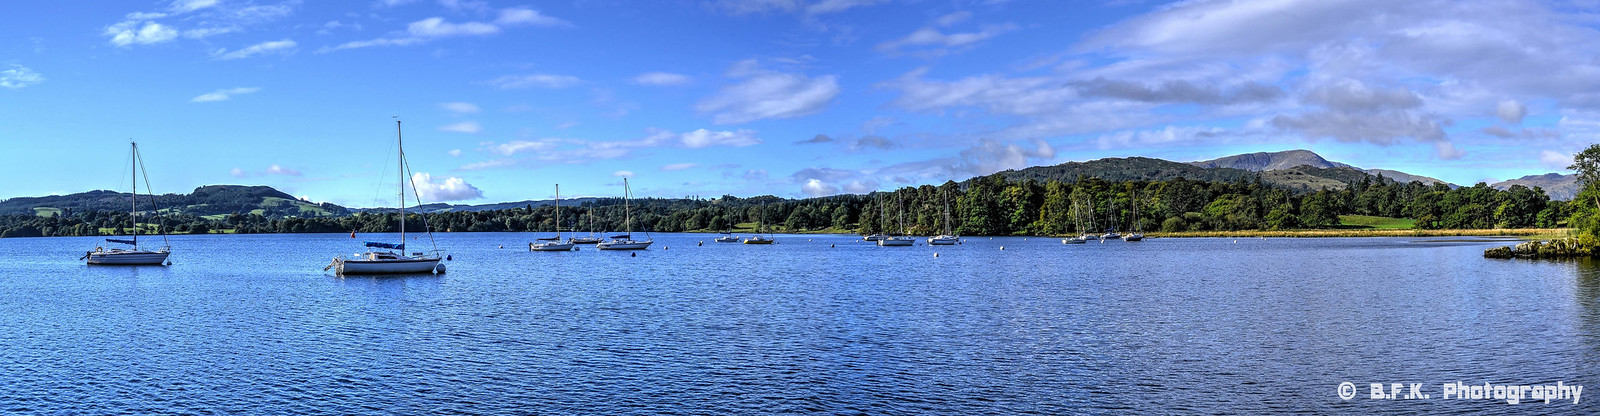 england panorama lake - photo #46